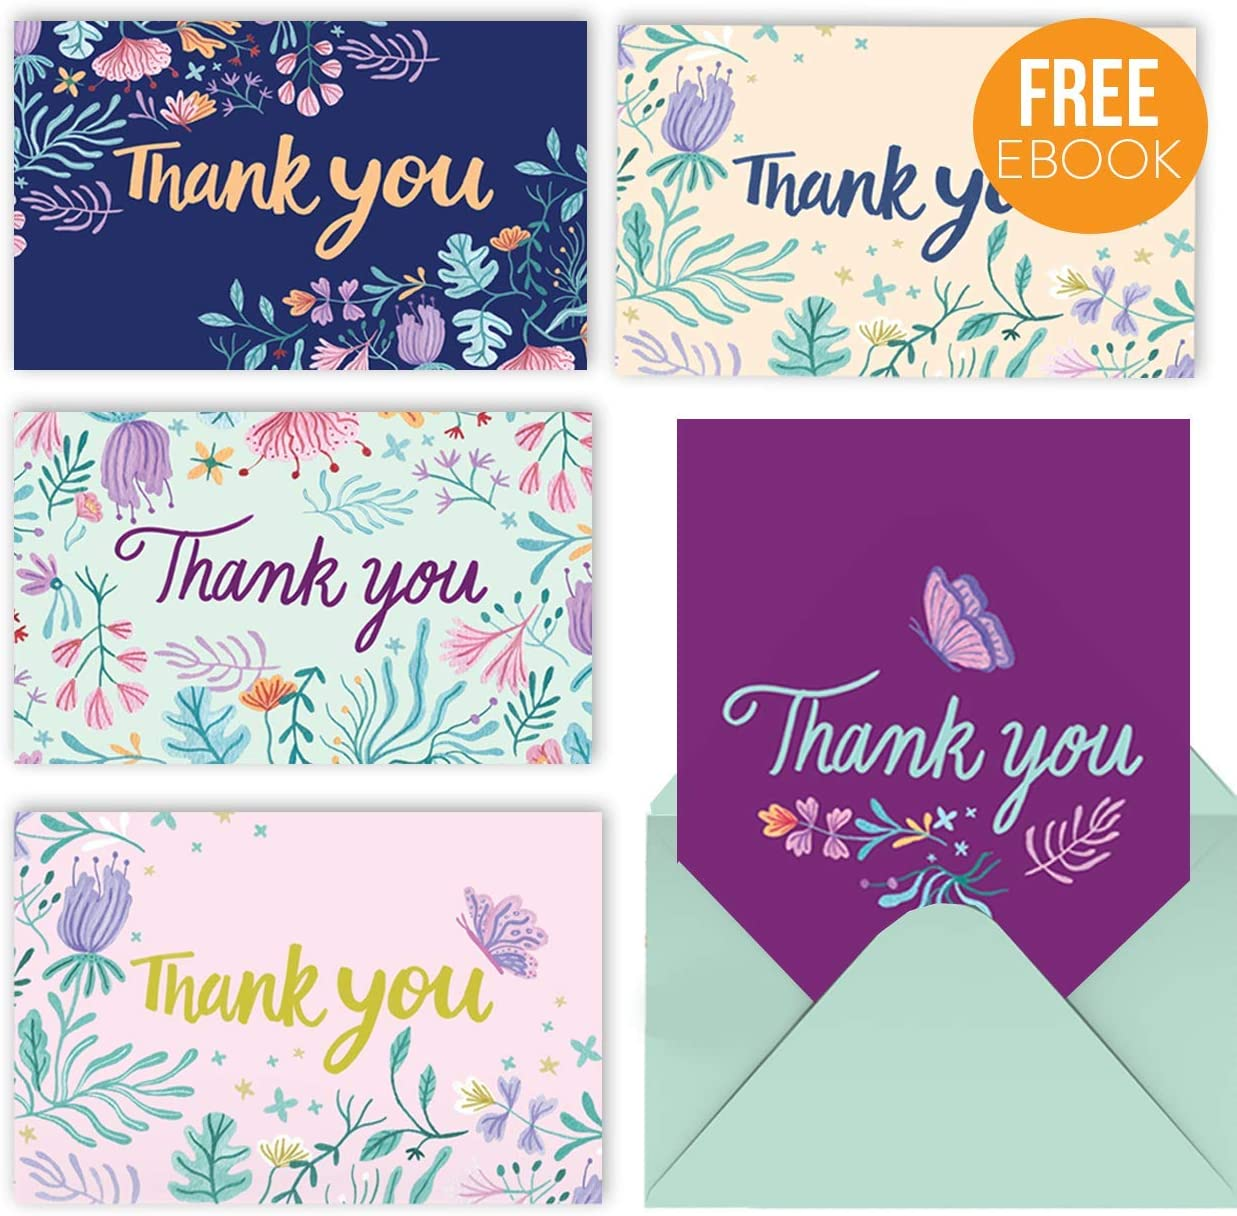 MPFY- Thank You Cards with Envelopes, Pack of 50, Thank You Notes, Thank You Card, Bulk Thank You Cards, Blank, Floral, Flower, Wedding, Baby Shower, Birthday, Bridal, Professional, Cute, Simple